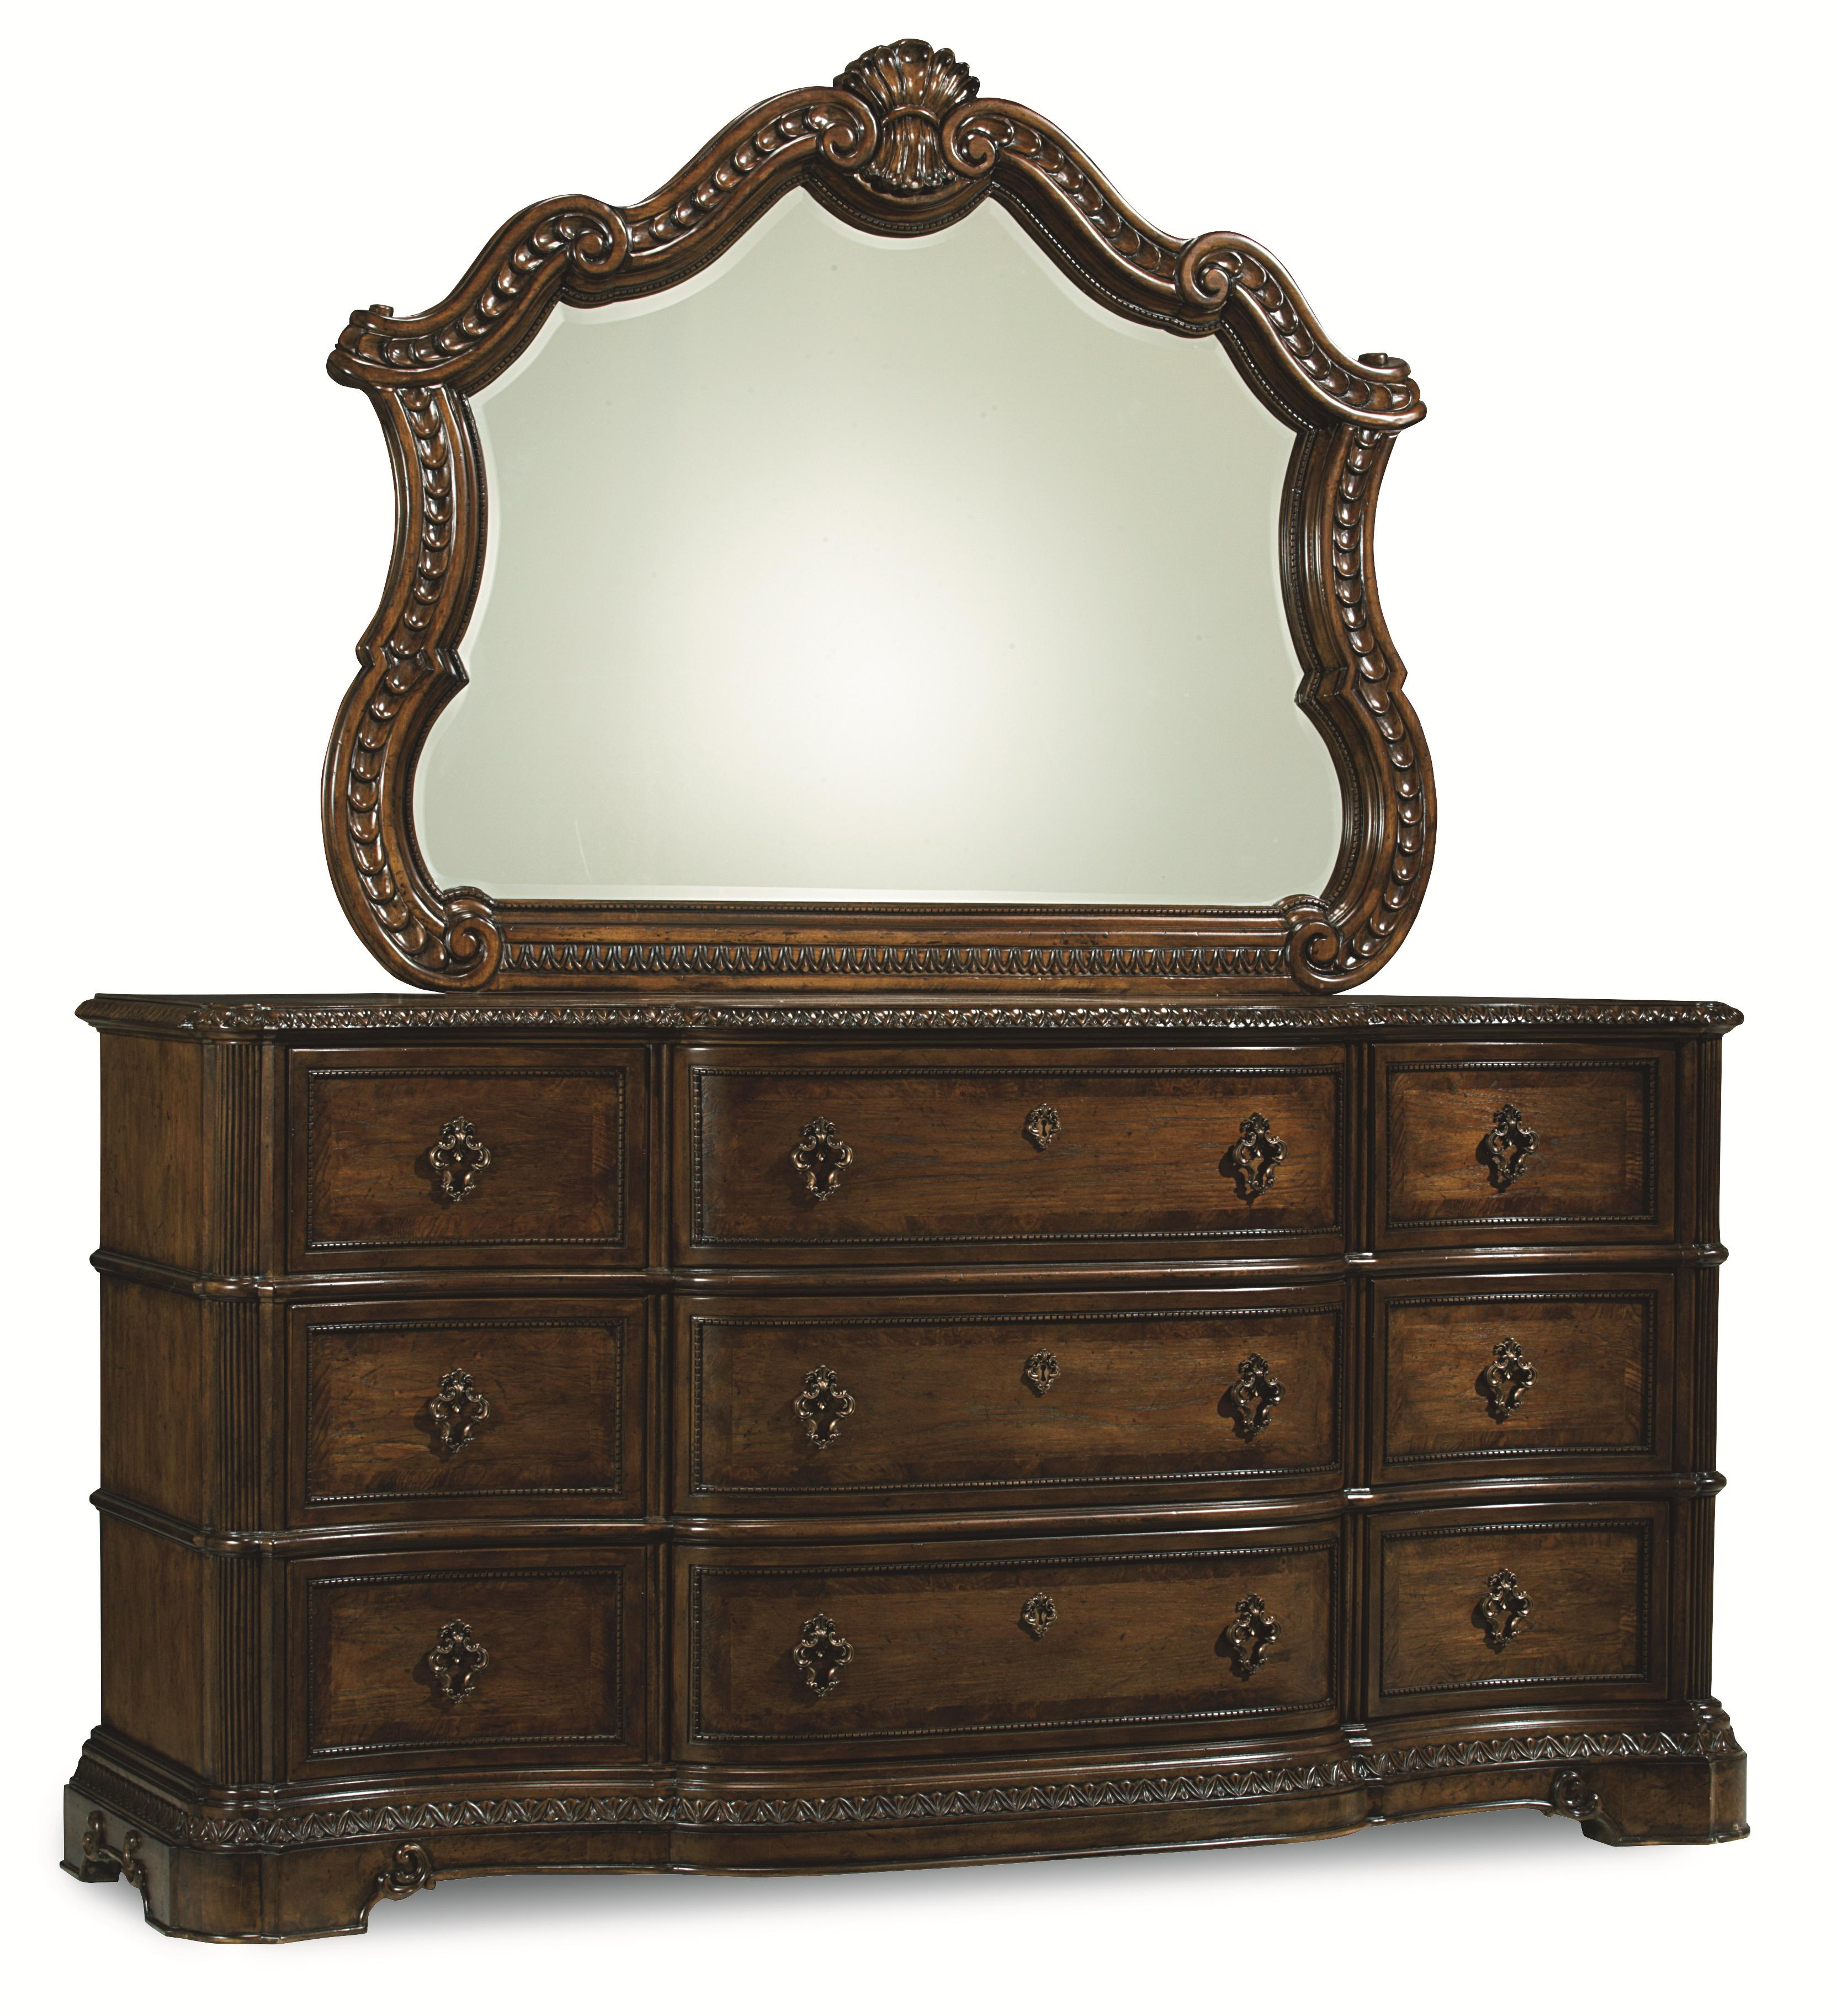 Legacy Classic Pemberleigh Dresser and Mirror Set - Item Number: 3100-1200+0100